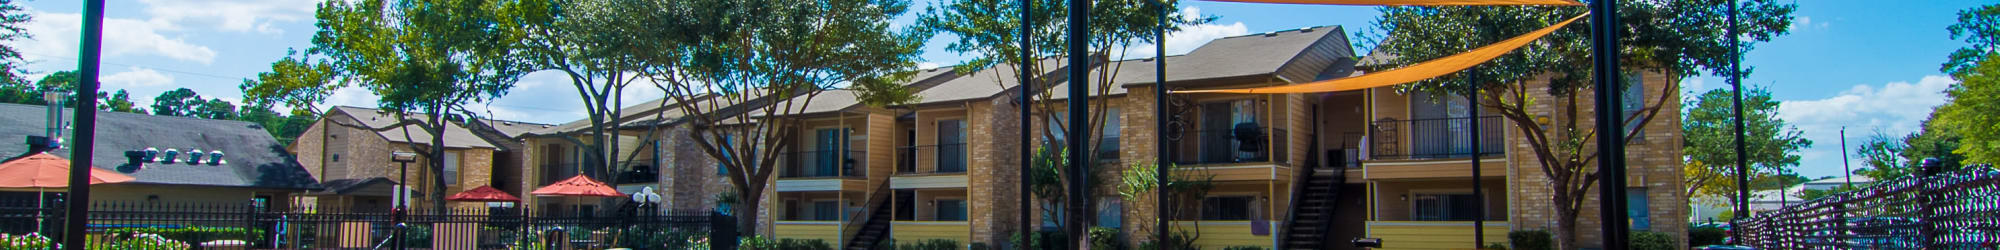 Pet friendly apartments in Humble, TX